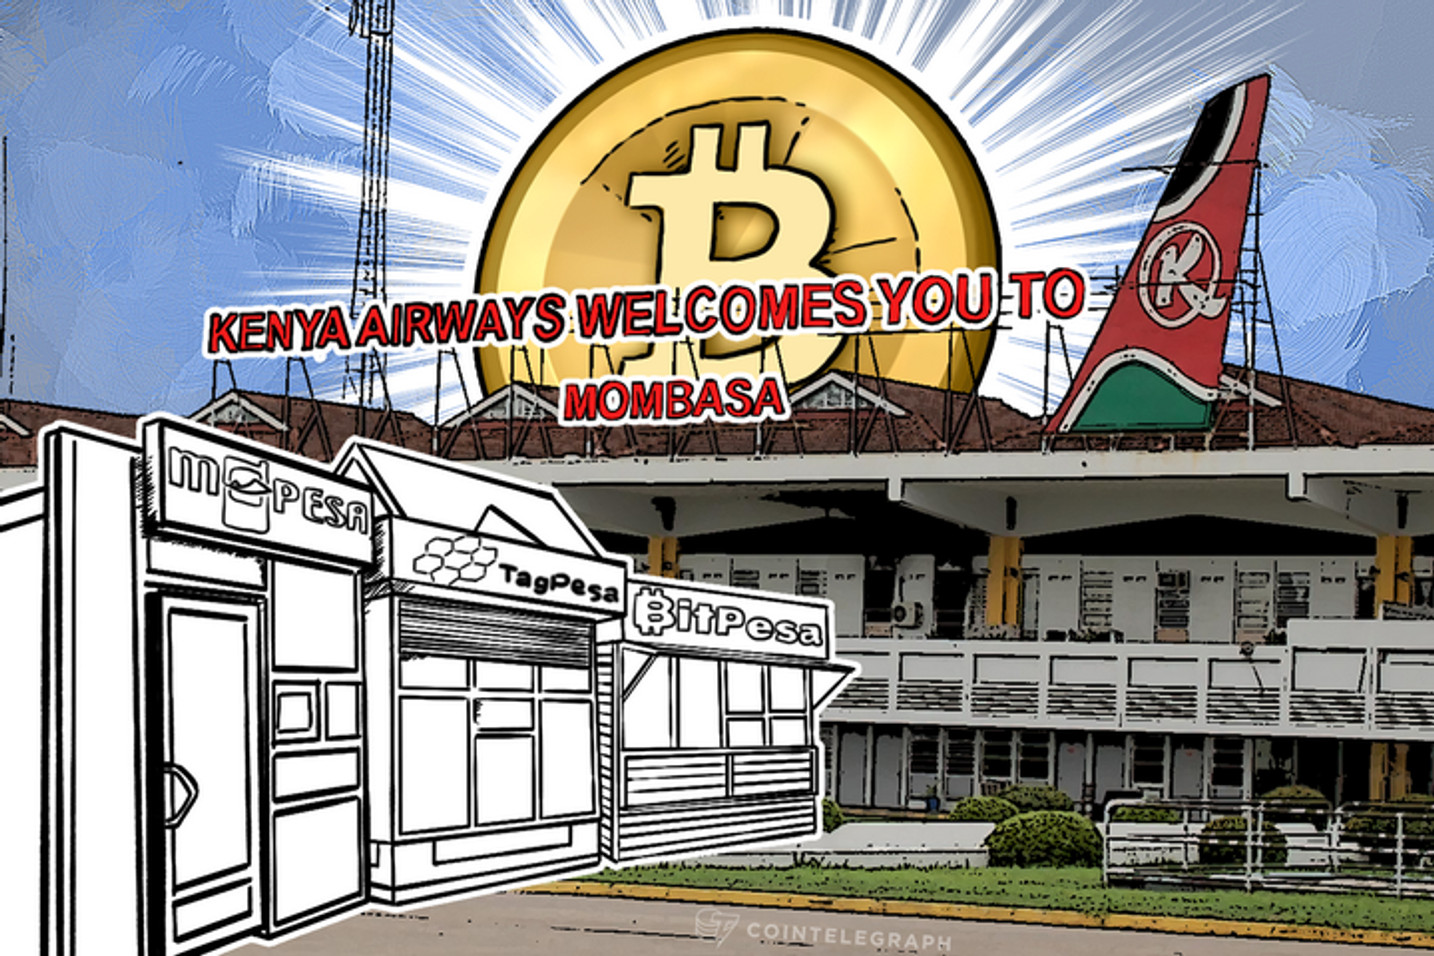 Kenya Adopts Bitcoin with Bitpesa, Tagpesa and M-Pesa